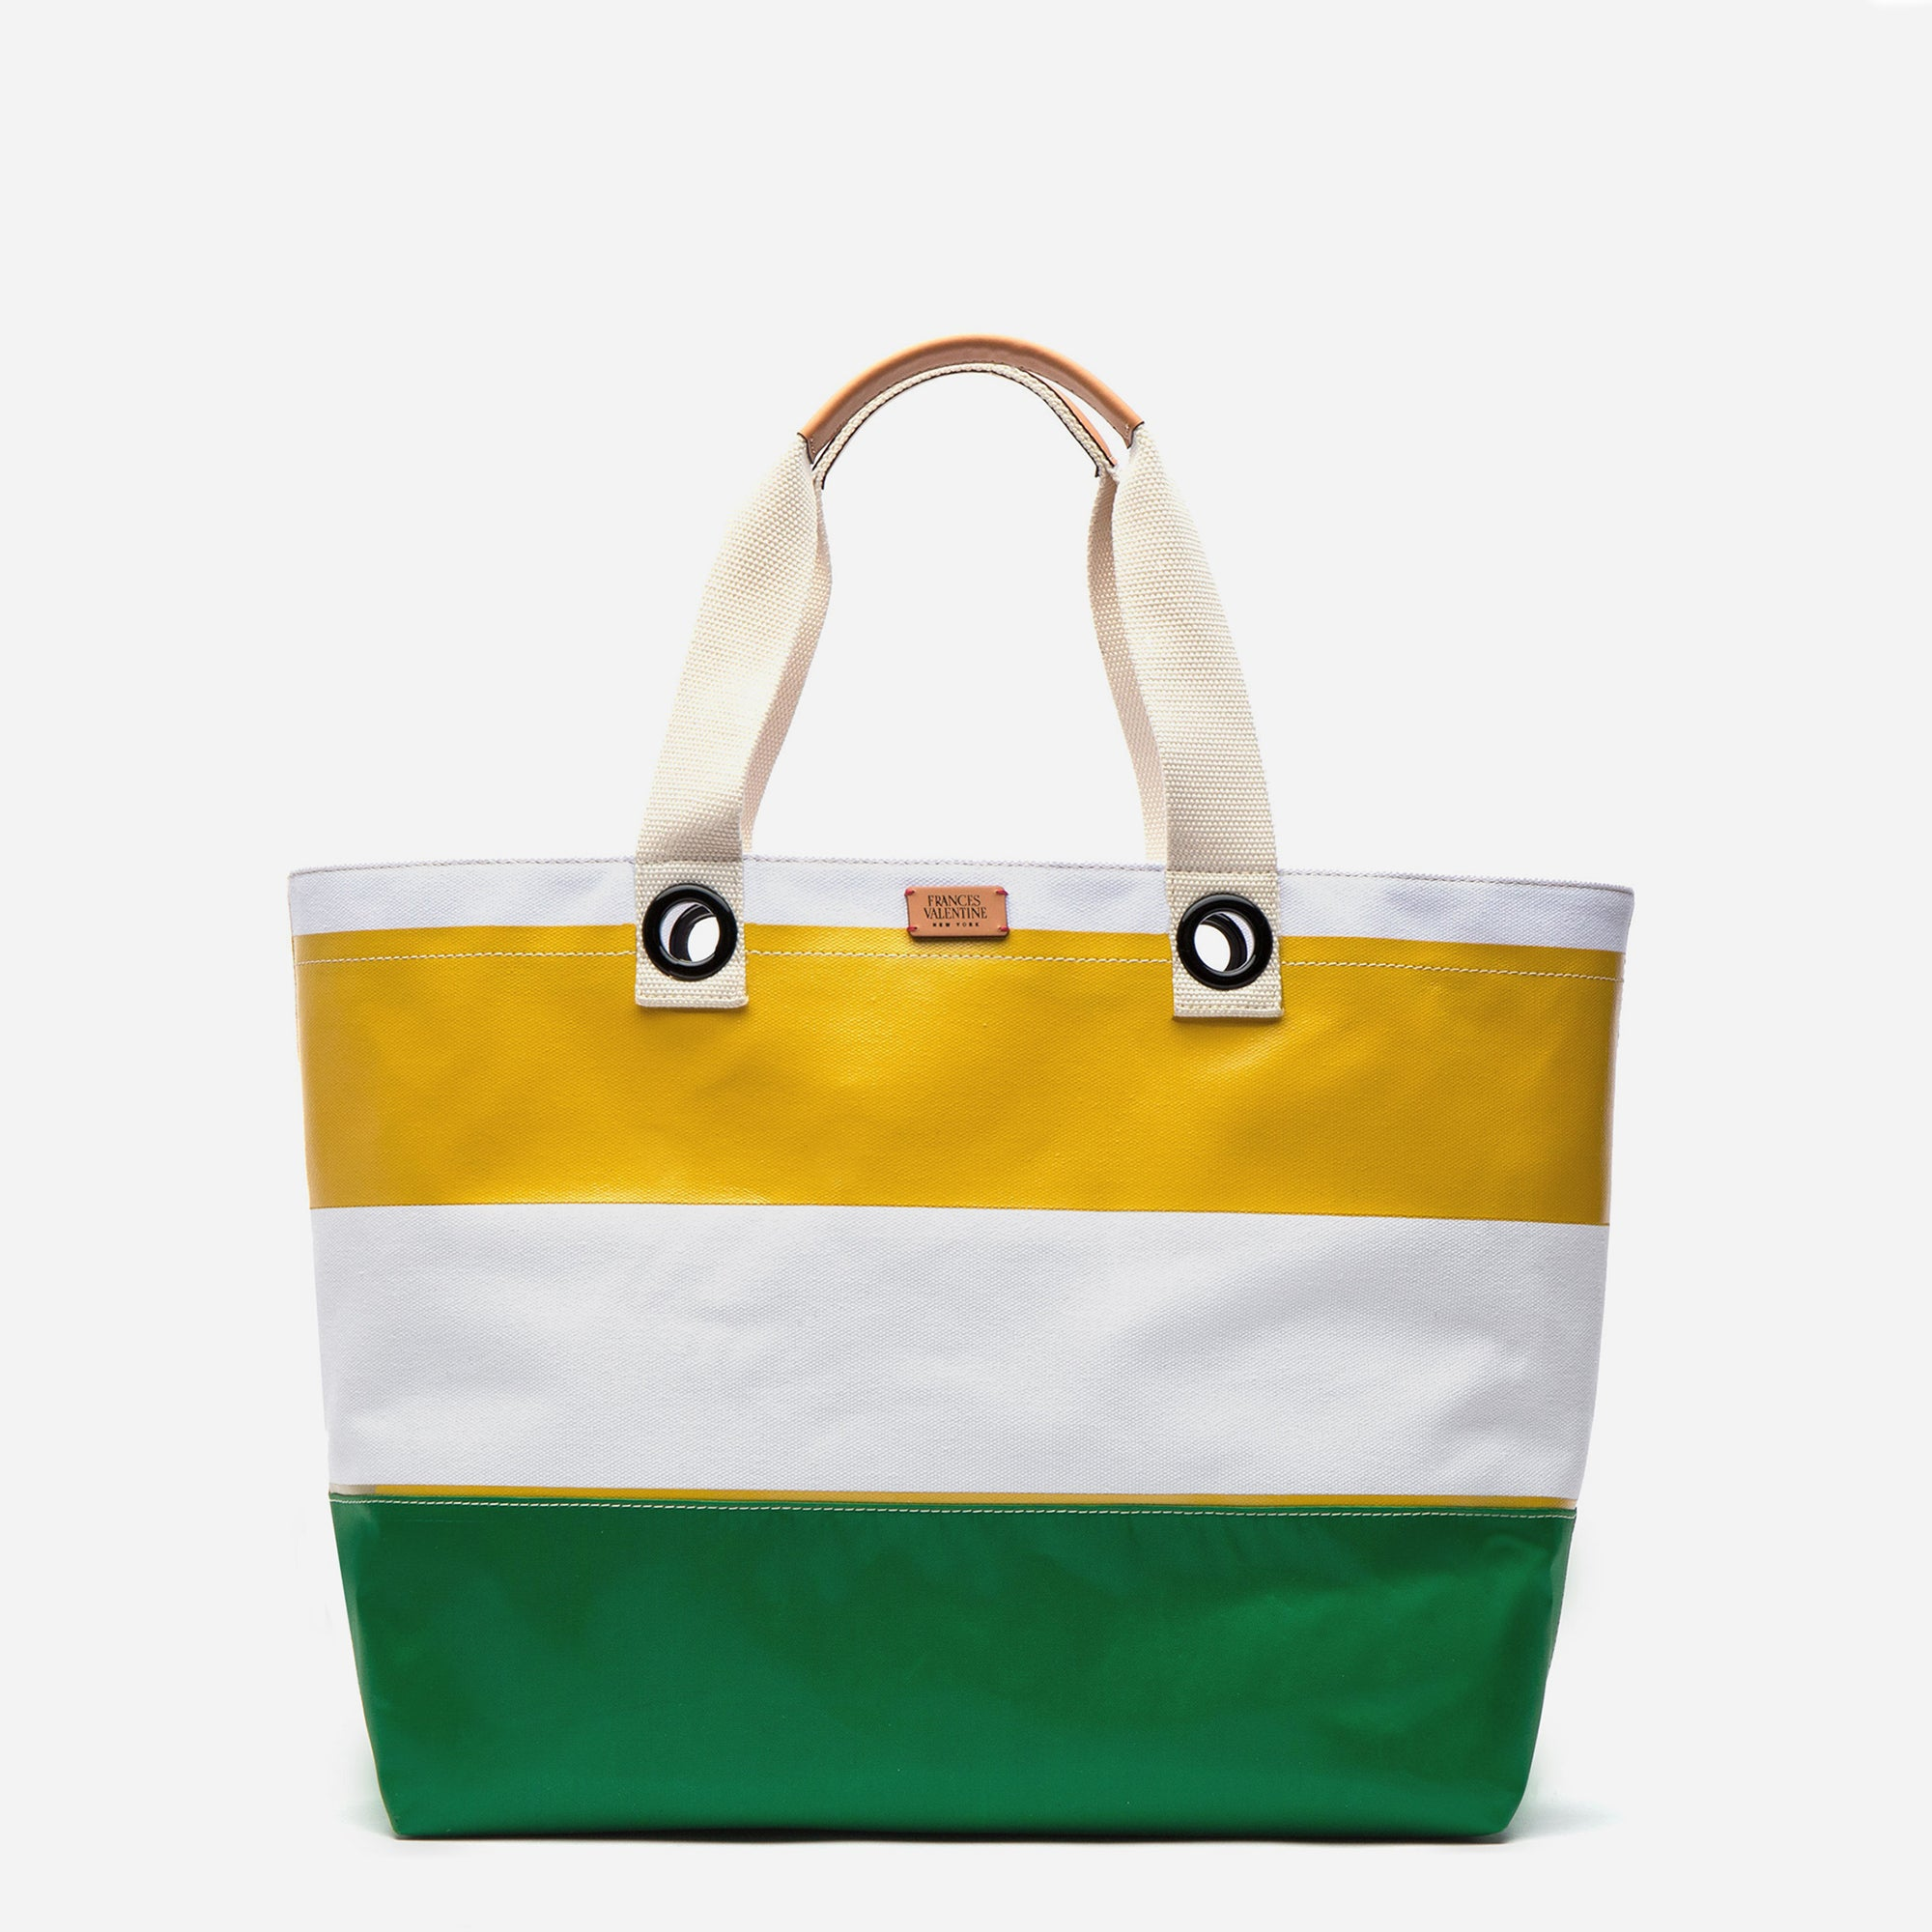 Gibson Beach Weekend Tote Yellow Green - Frances Valentine